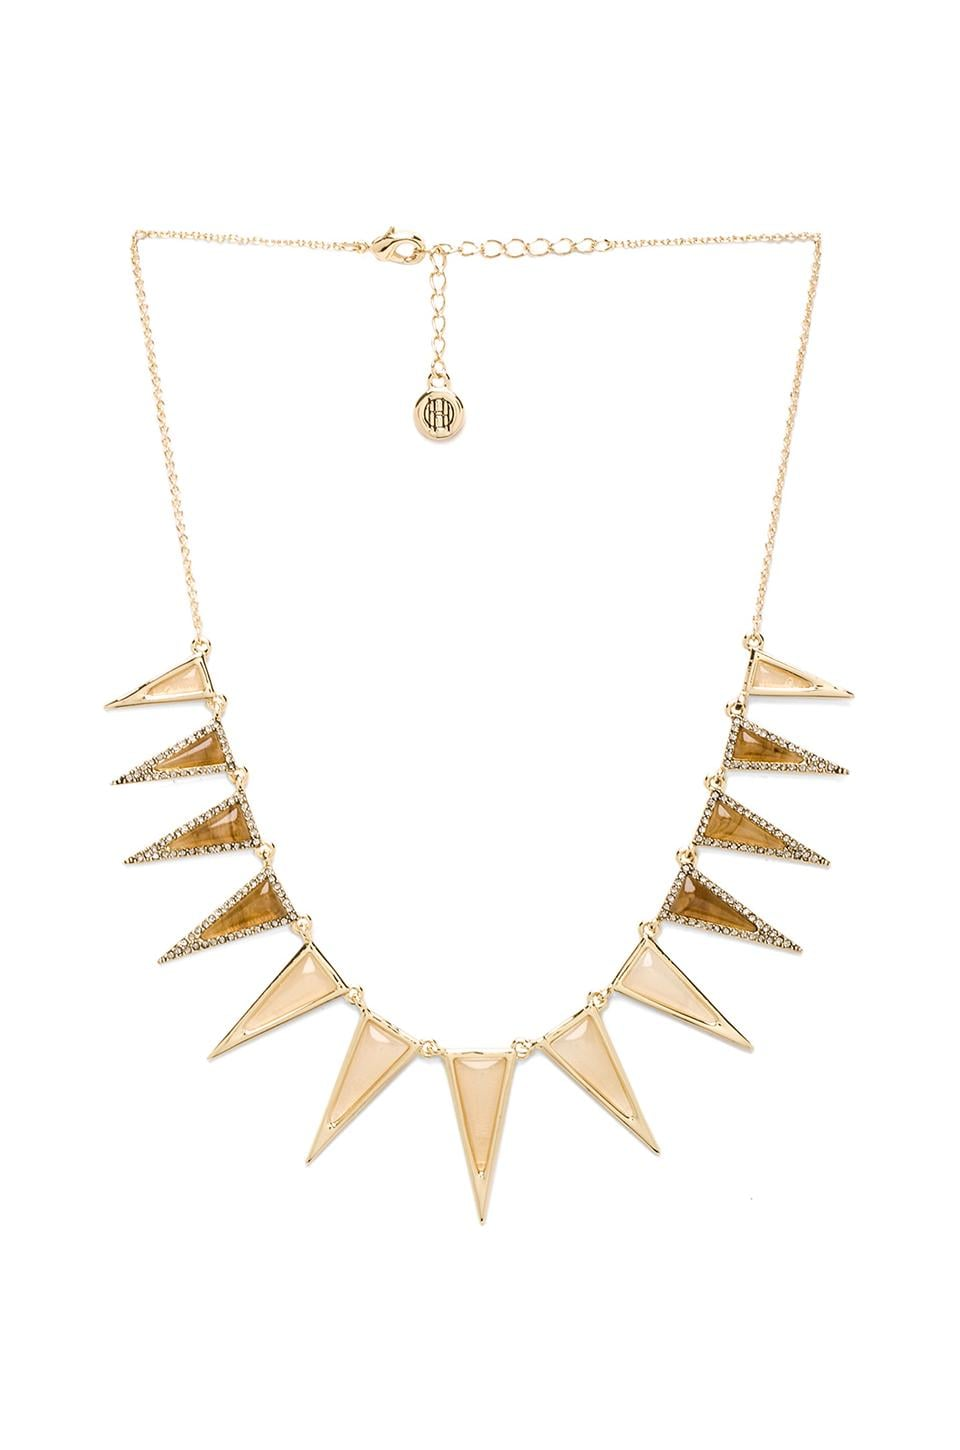 House of Harlow 1960 House of Harlow Echelon Collar Necklace in Gold